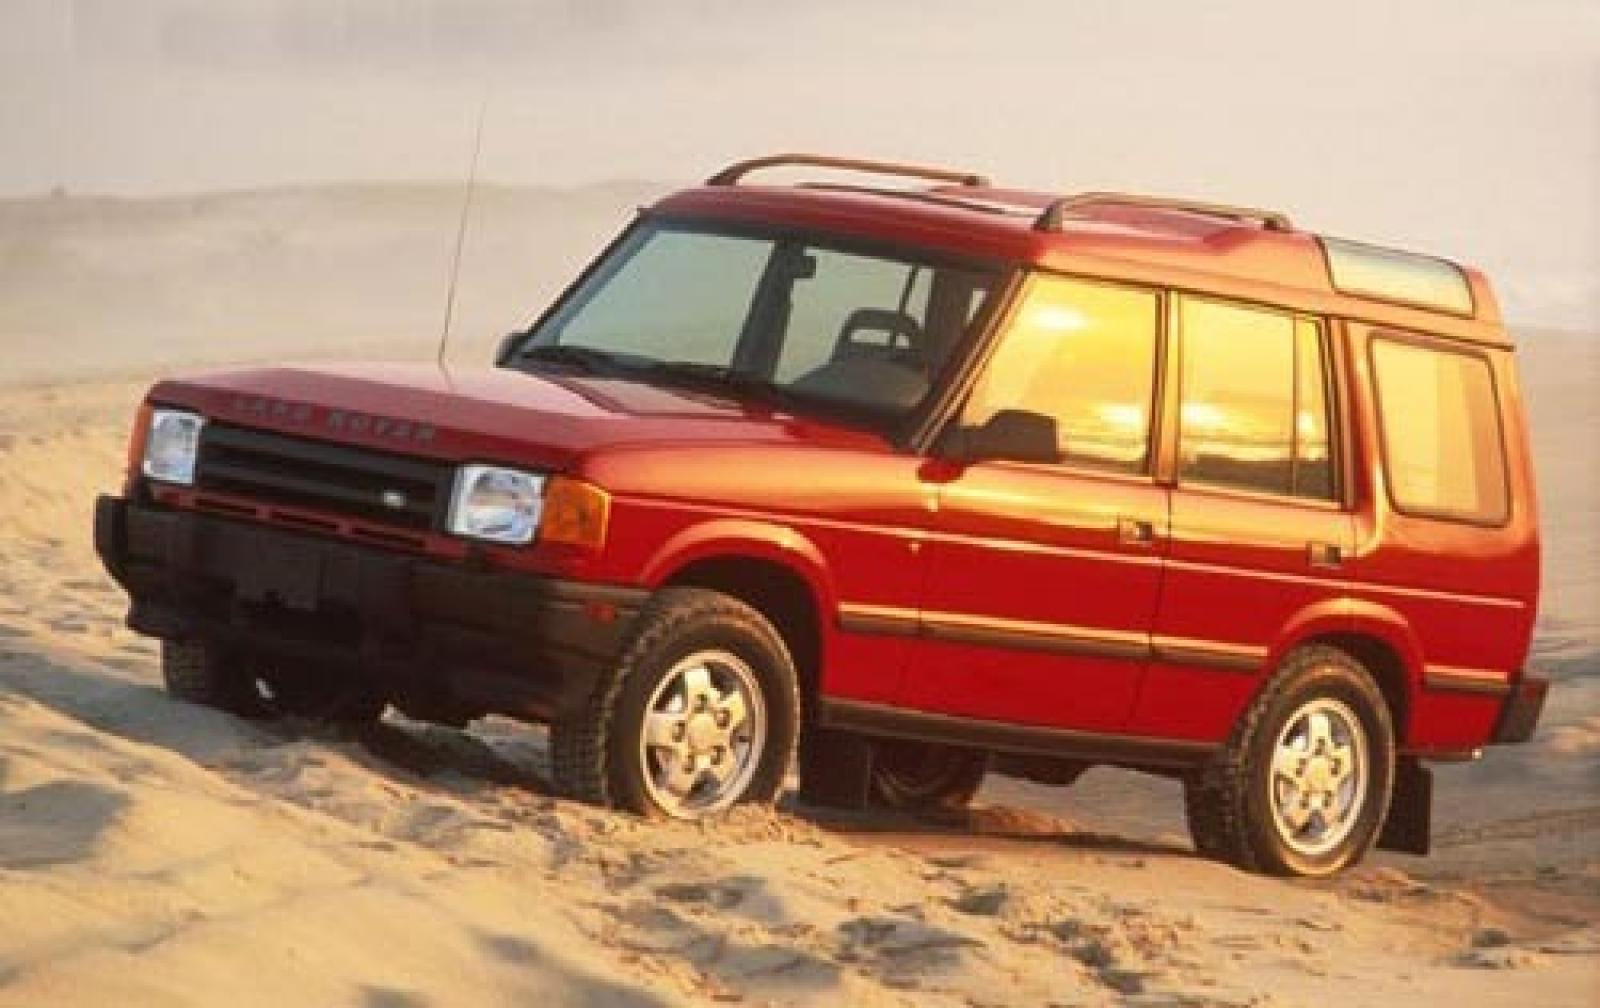 1996 LAND ROVER DISCOVERY - 1600px Image #1